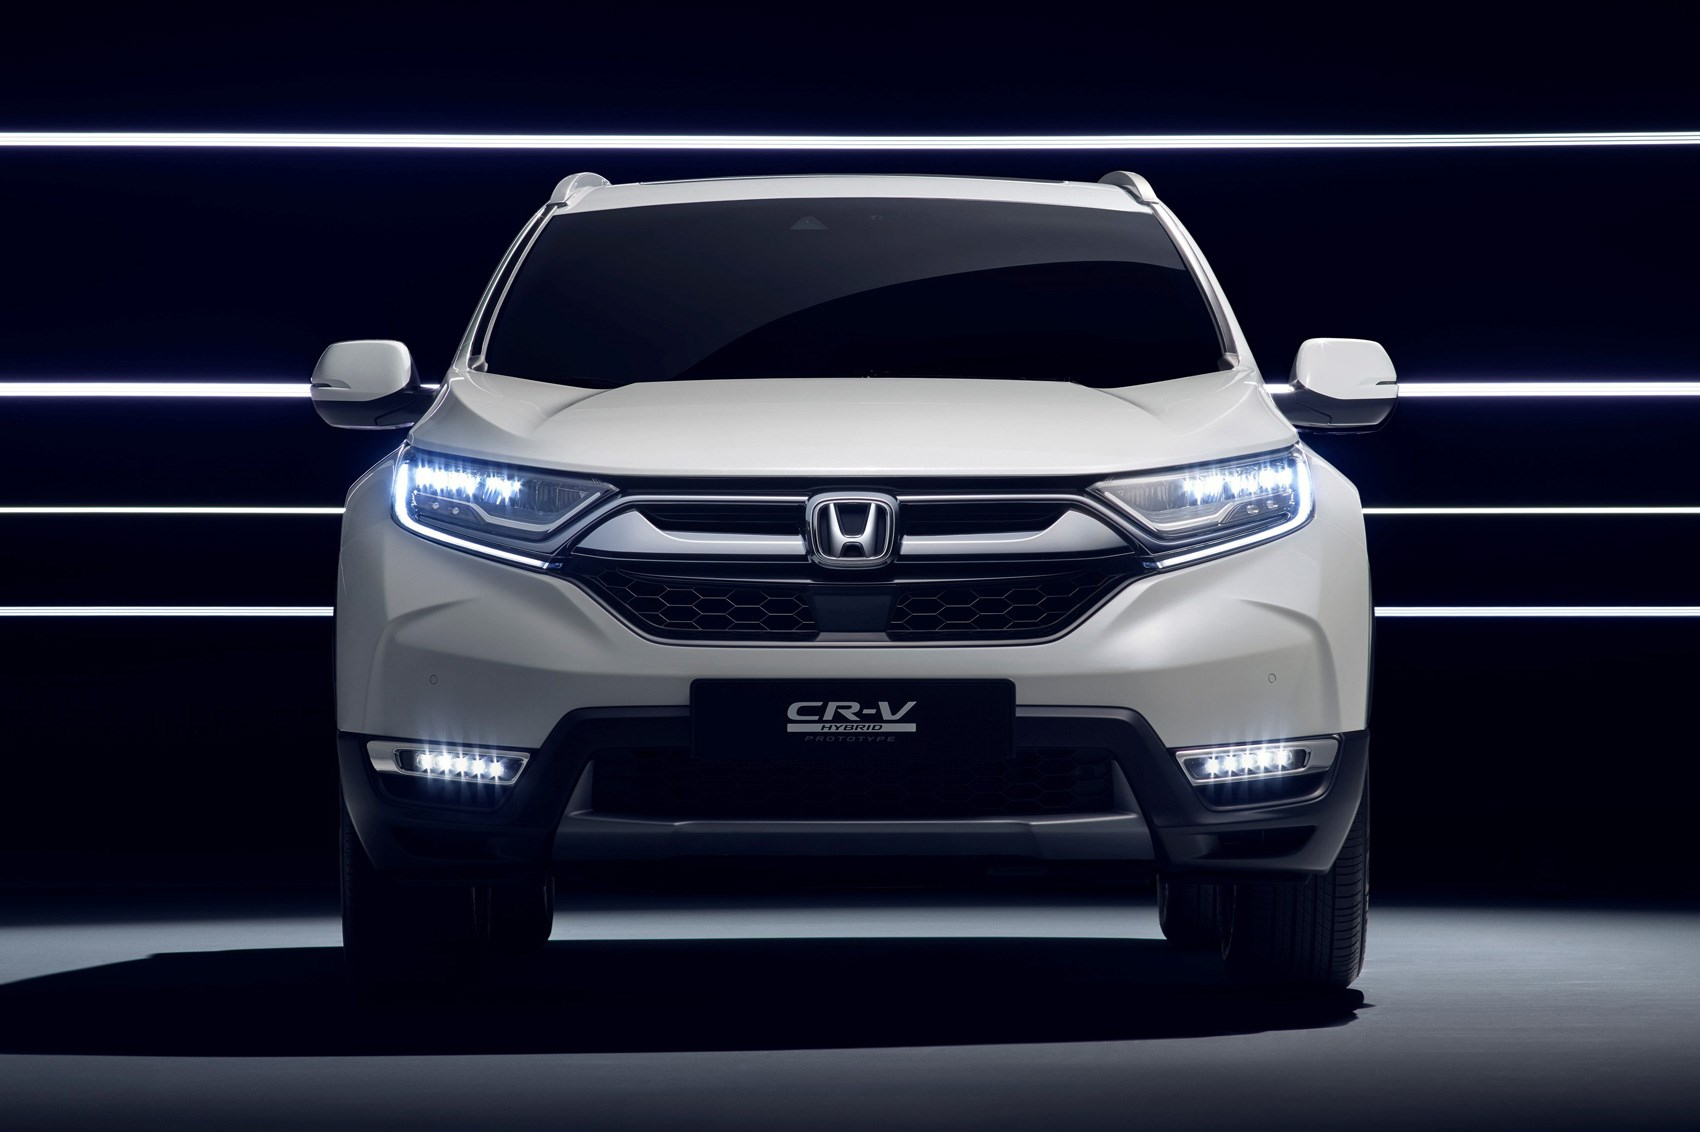 Hybrid Honda CR-V to debut at Frankfurt